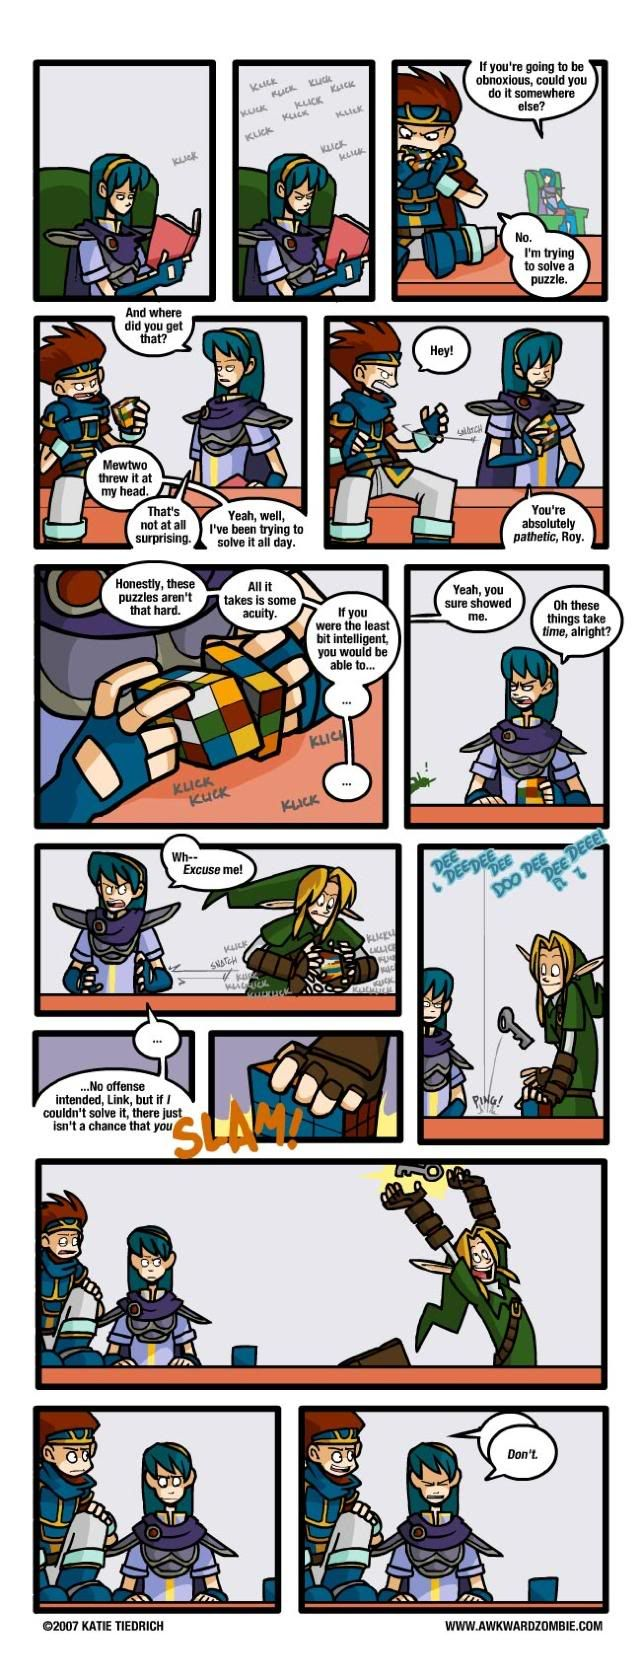 AWKWARD ZOMBIE - Rubix Rubes (Link is the Forrest Gump of gaming.)